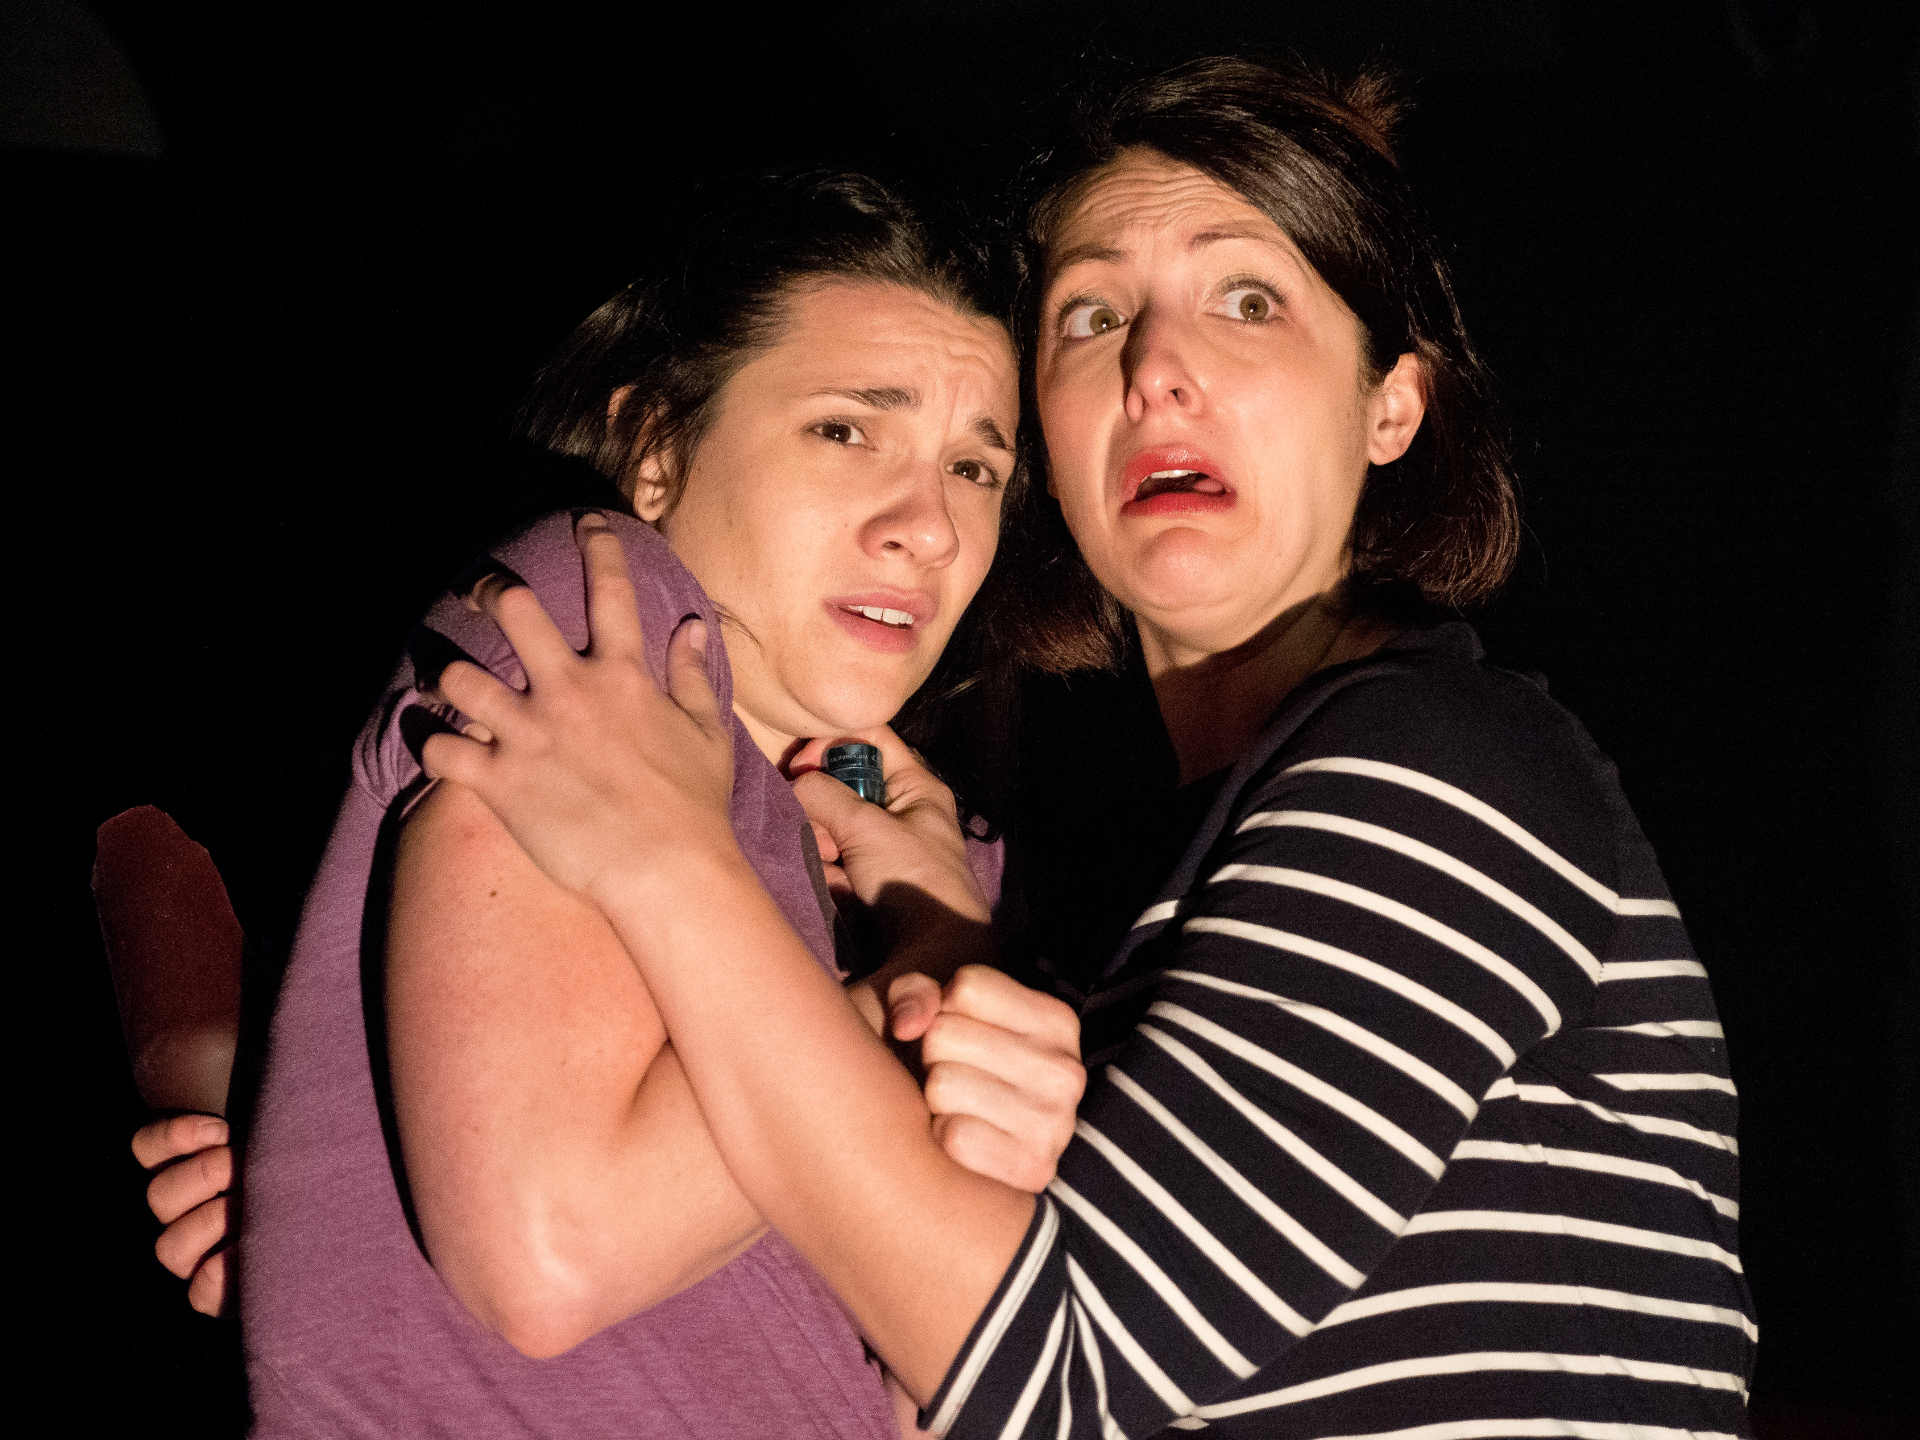 Kathryn Acosta (Lily) and Krista D'Agostino (Violet). Photo by Clark Bender.